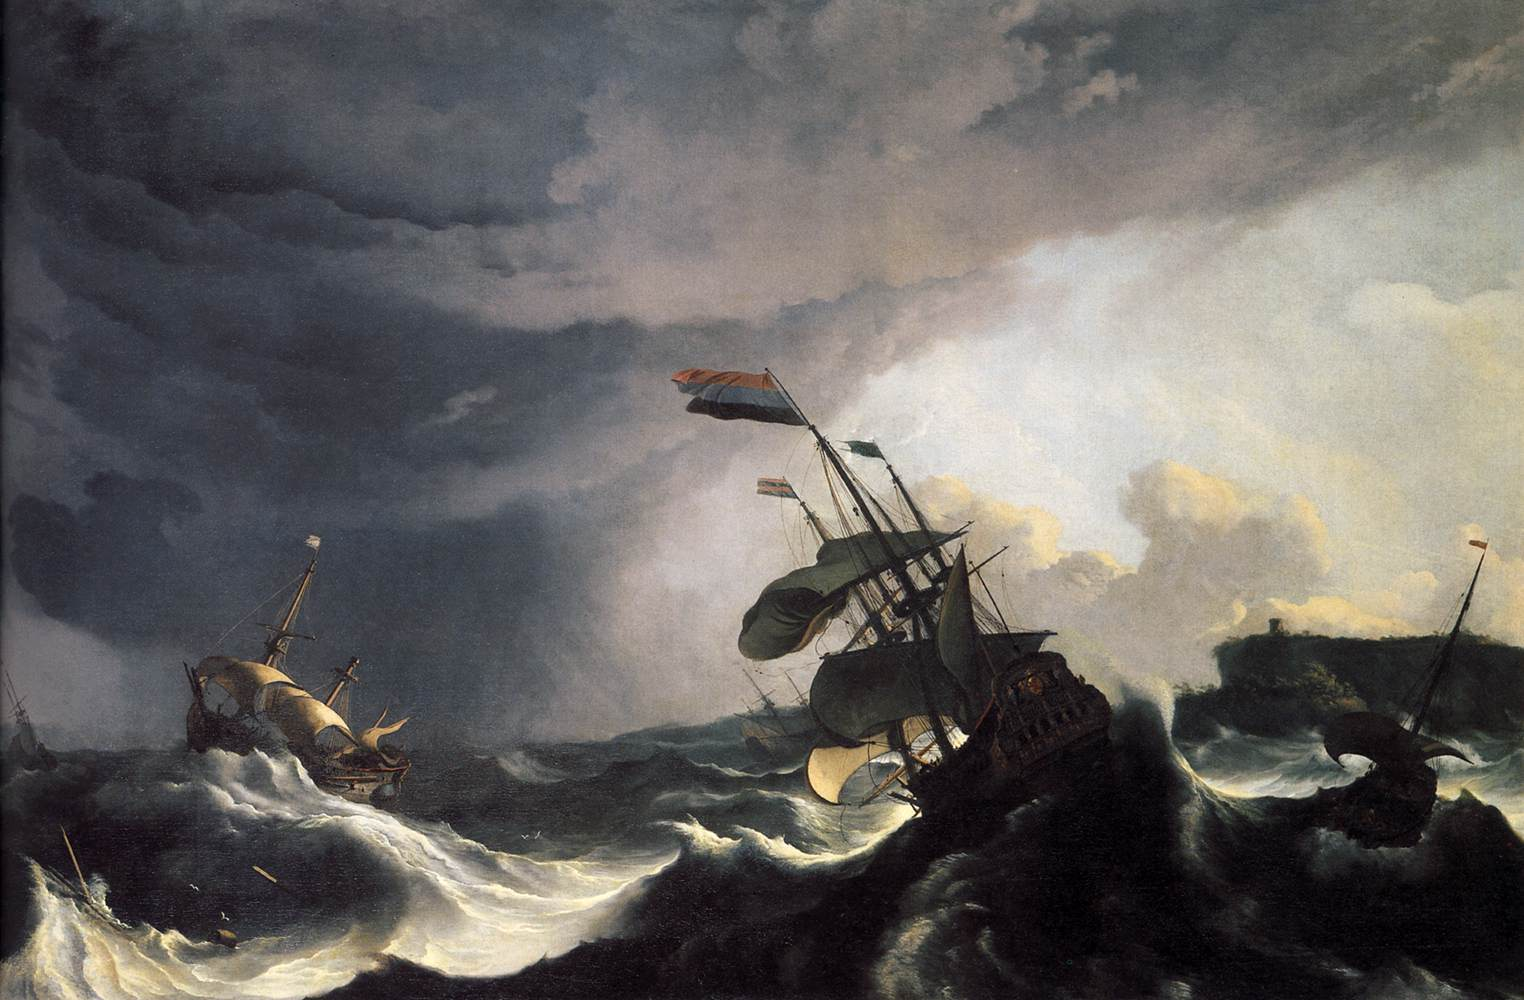 Ships_in_Distress_in_a_Raging_Storm_c1690_Ludolf_Backhuysen How will I navigate difficult times?